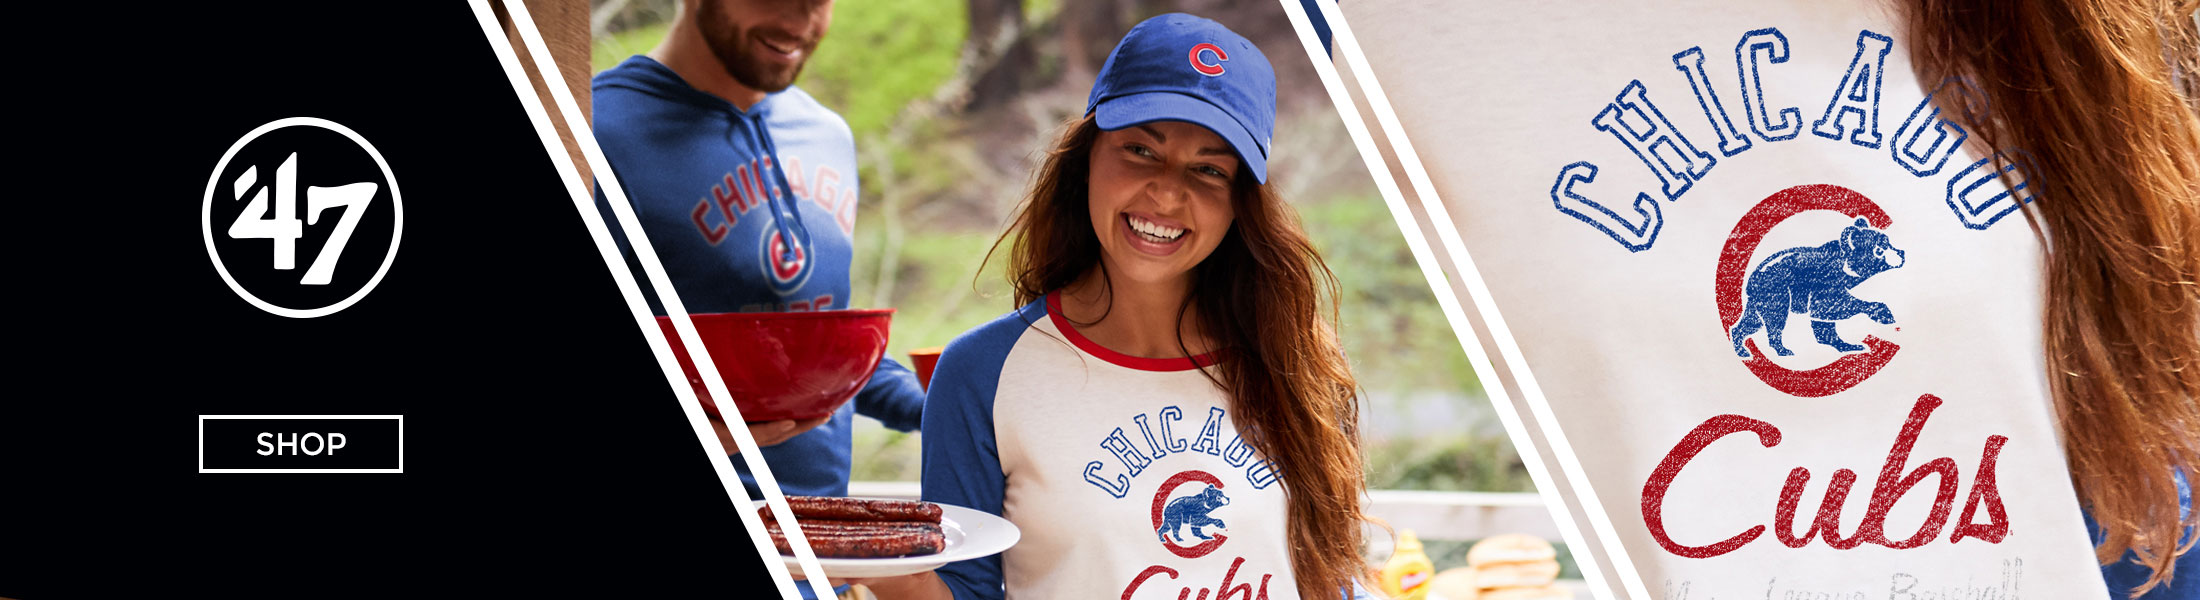 Chicago Cubs Gear at SportsWorldChicago.com